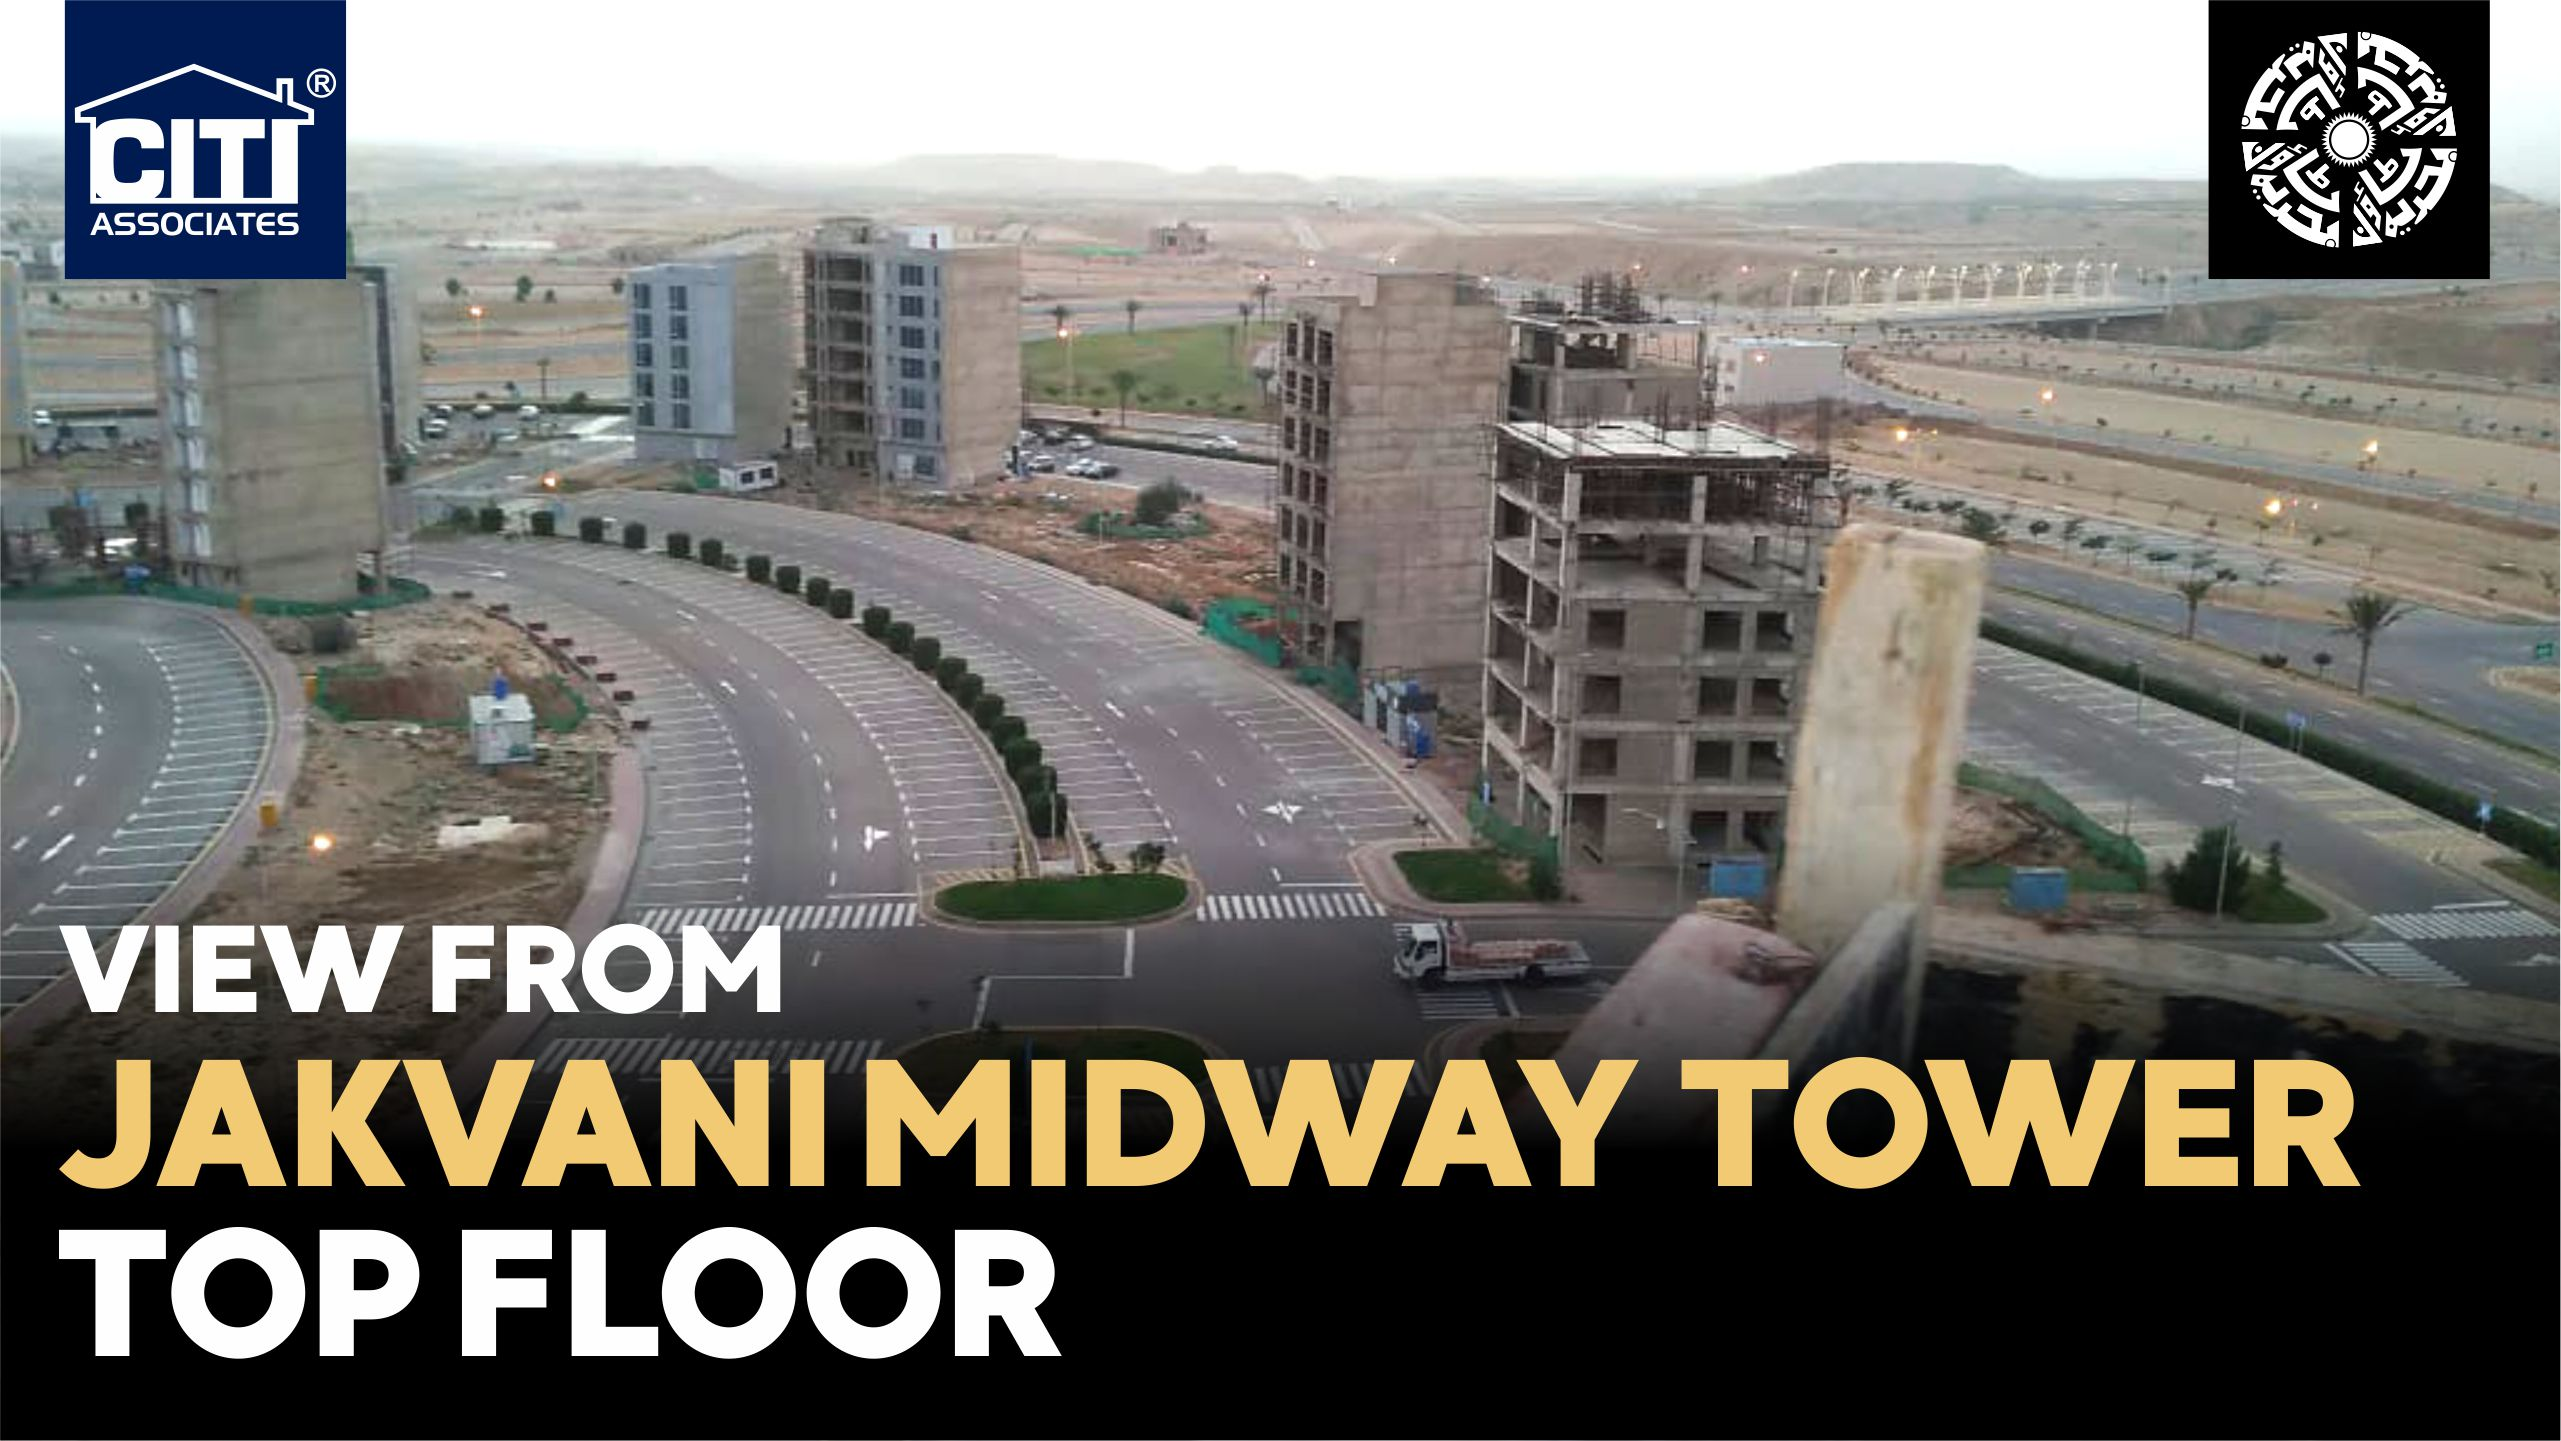 Jakvani Midway Tower – View From Top Floor – Midway Commercial / Bahria Town Karachi